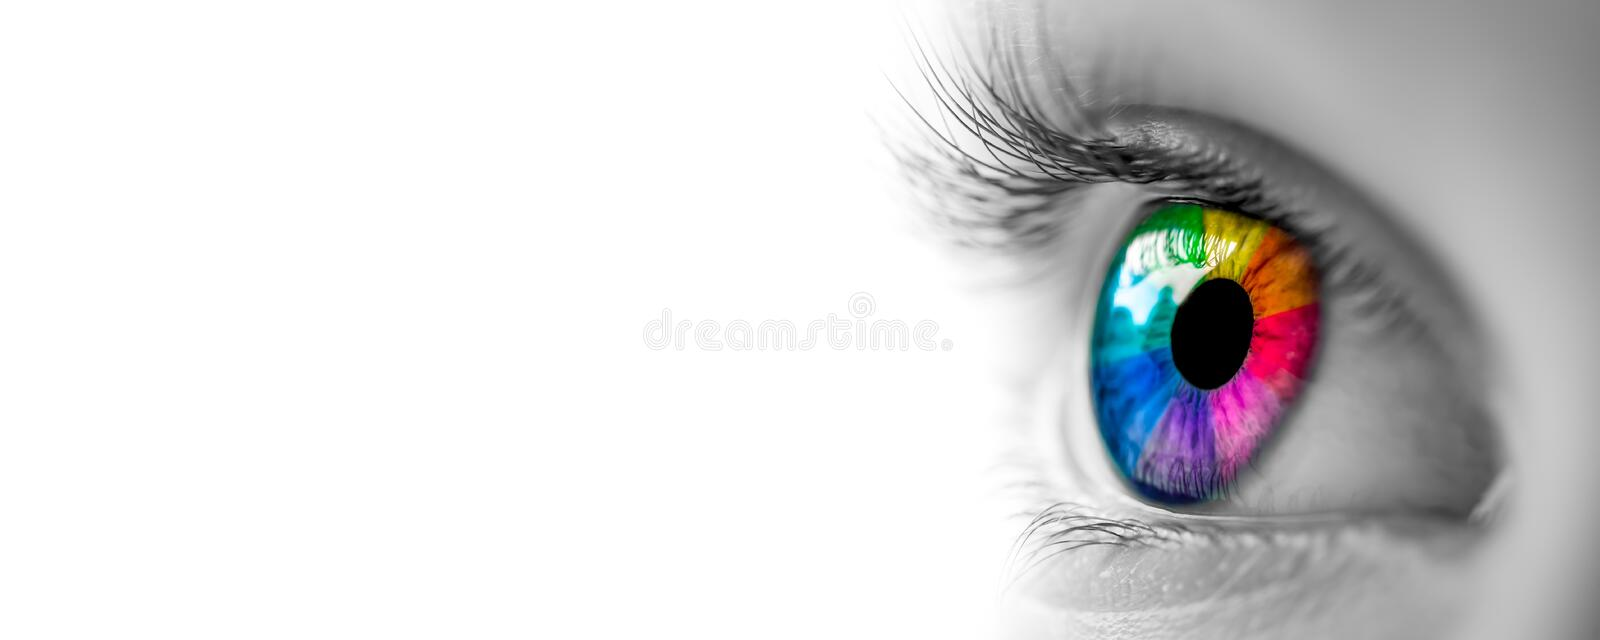 Black & White With Rainbow Eye royalty free stock photography